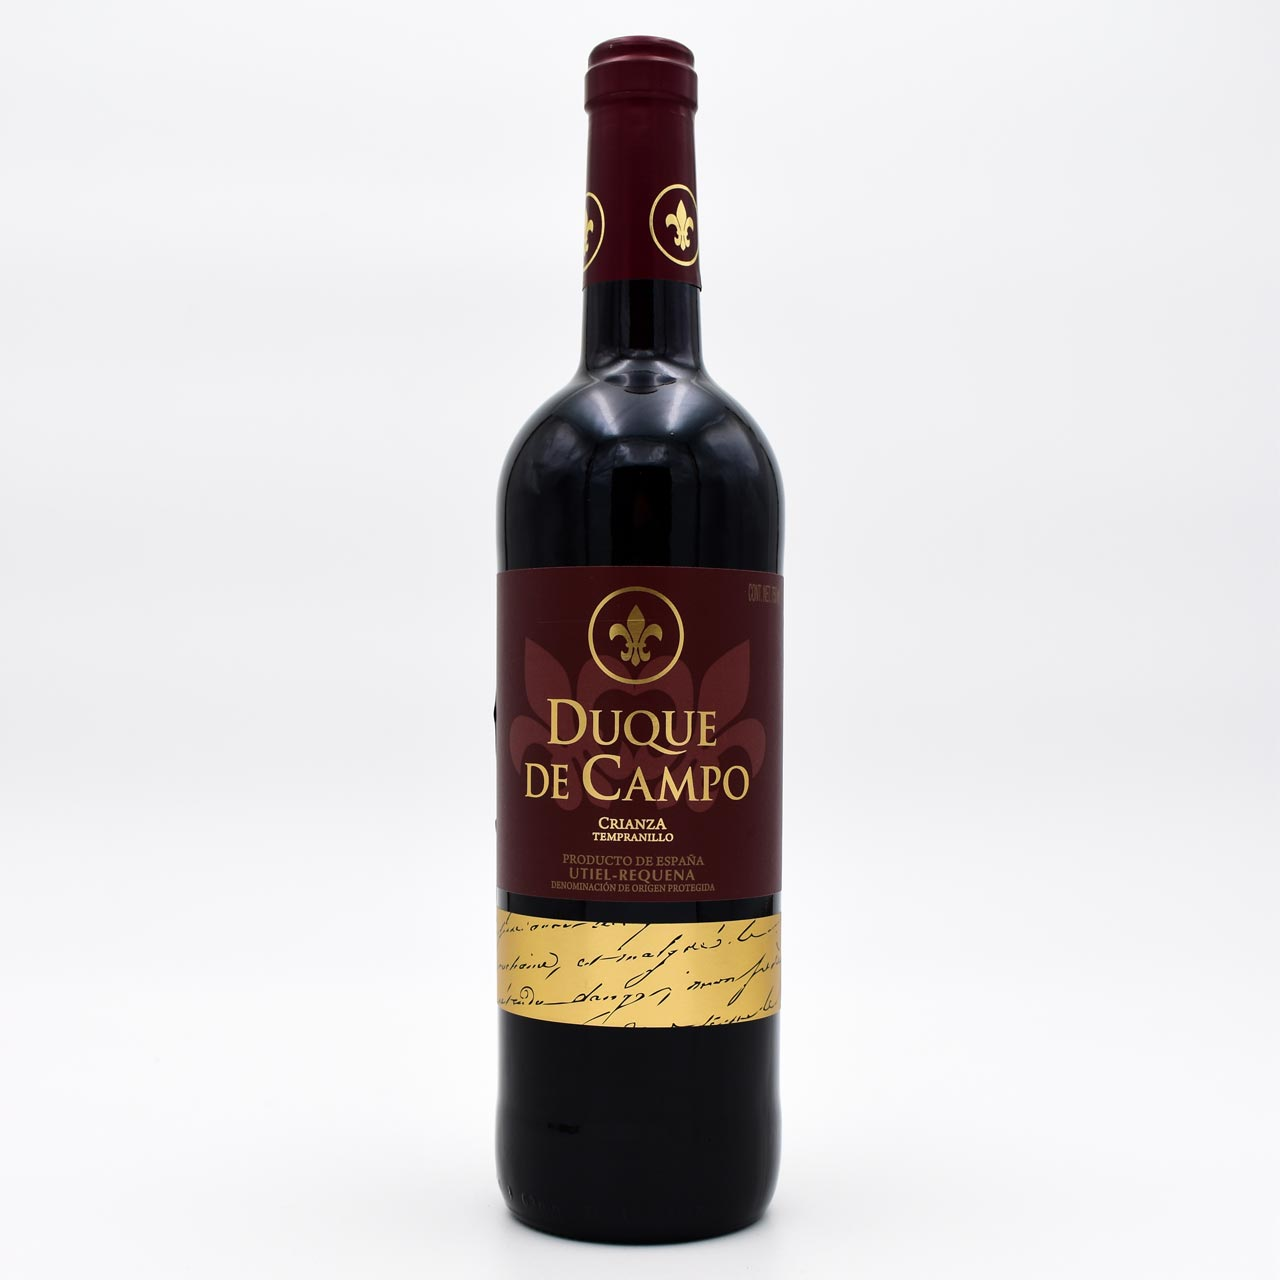 Вино, Vicente Gandia Duque de Campo Crianza Tempranillo Utiel-Requena DO, красное сухое, 0.75 л.